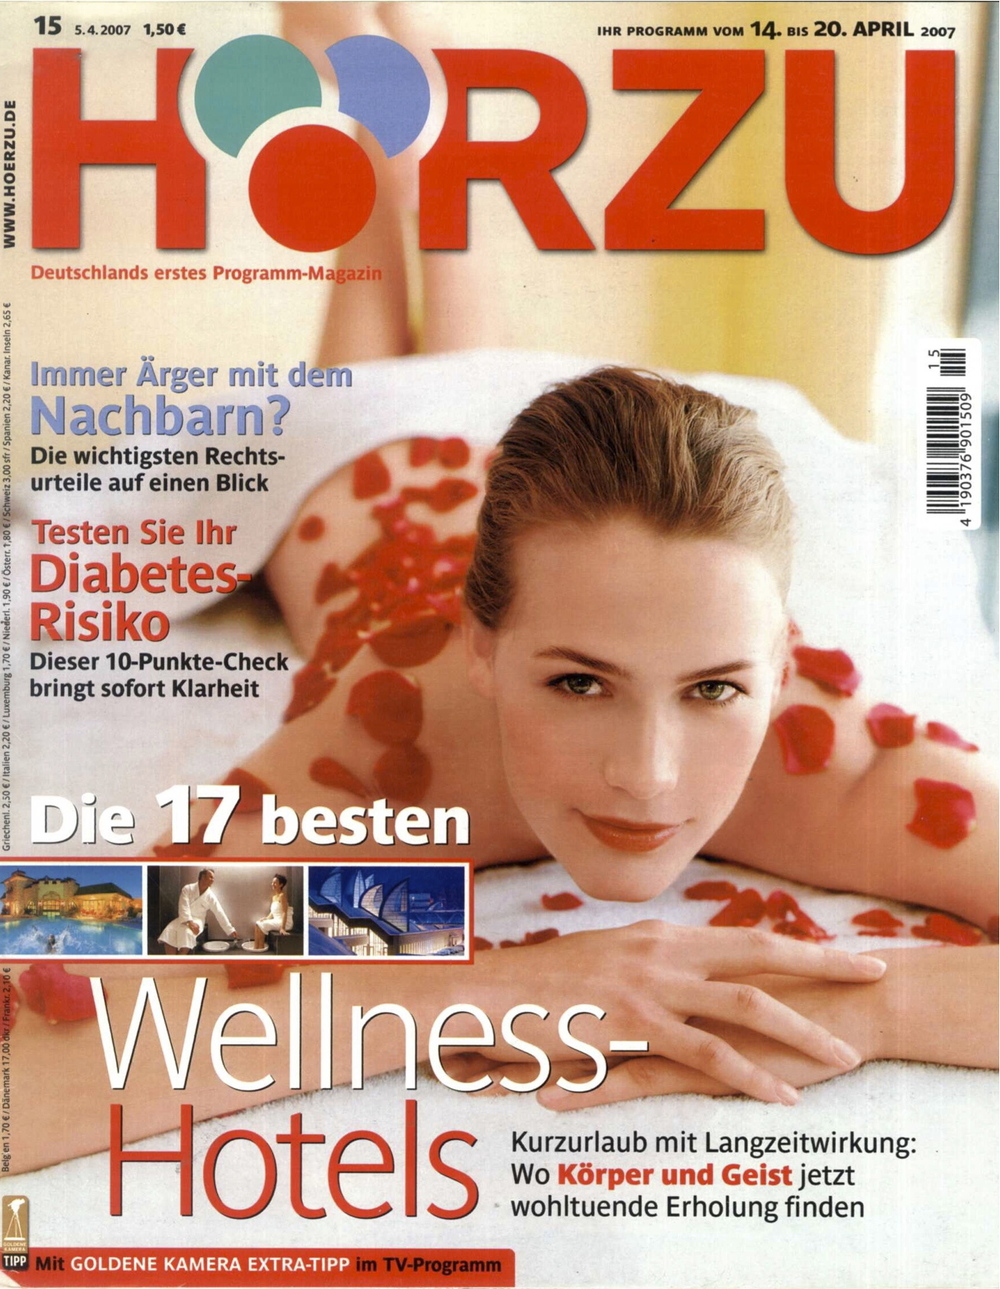 HZ_5.4.2007_Covers.jpg